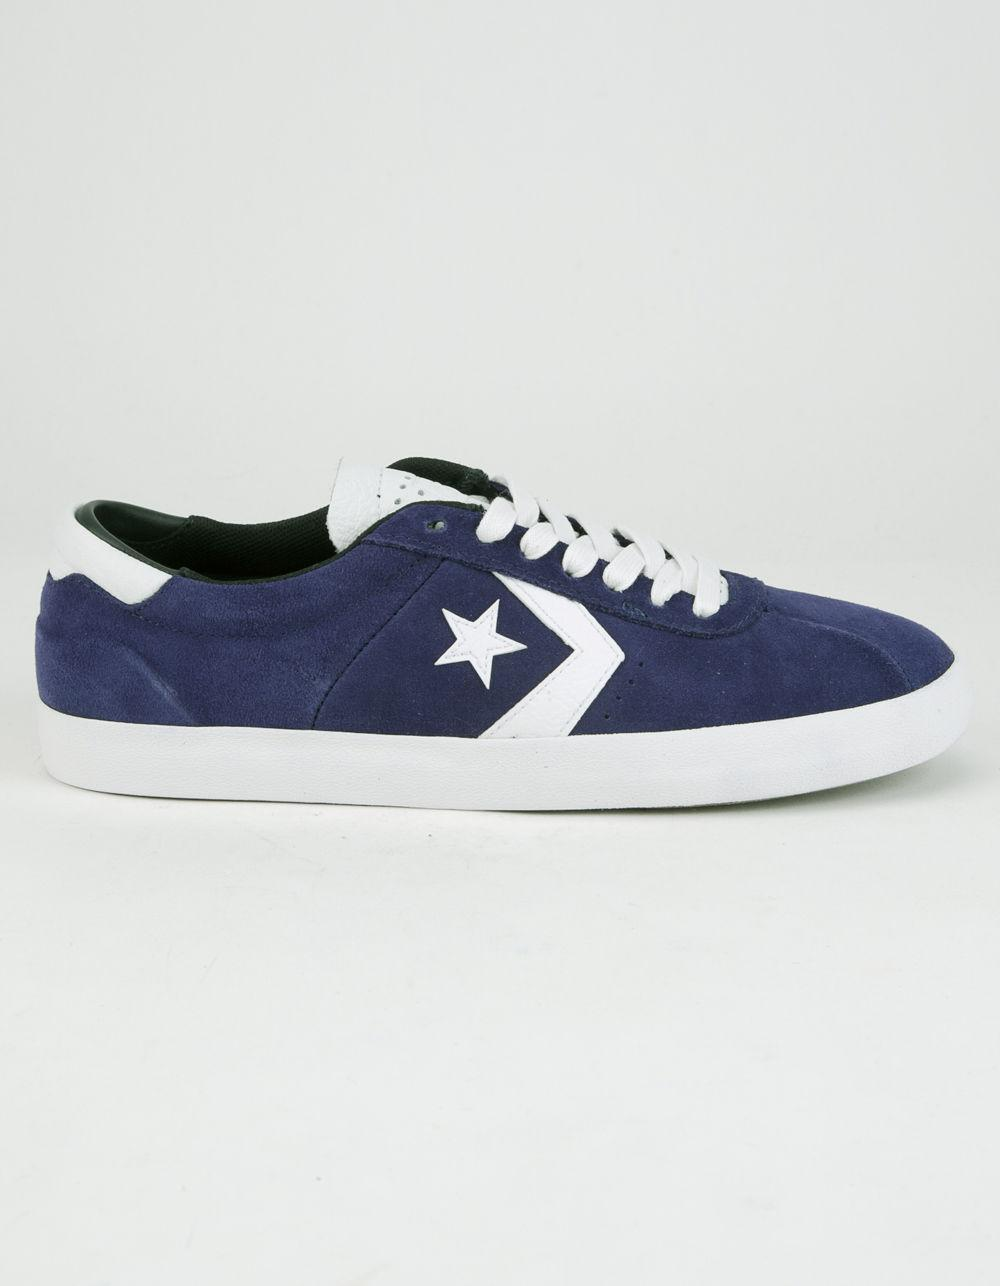 c201ef0675b2e Lyst - Converse Breakpoint Pro Suede Shoes in Blue for Men